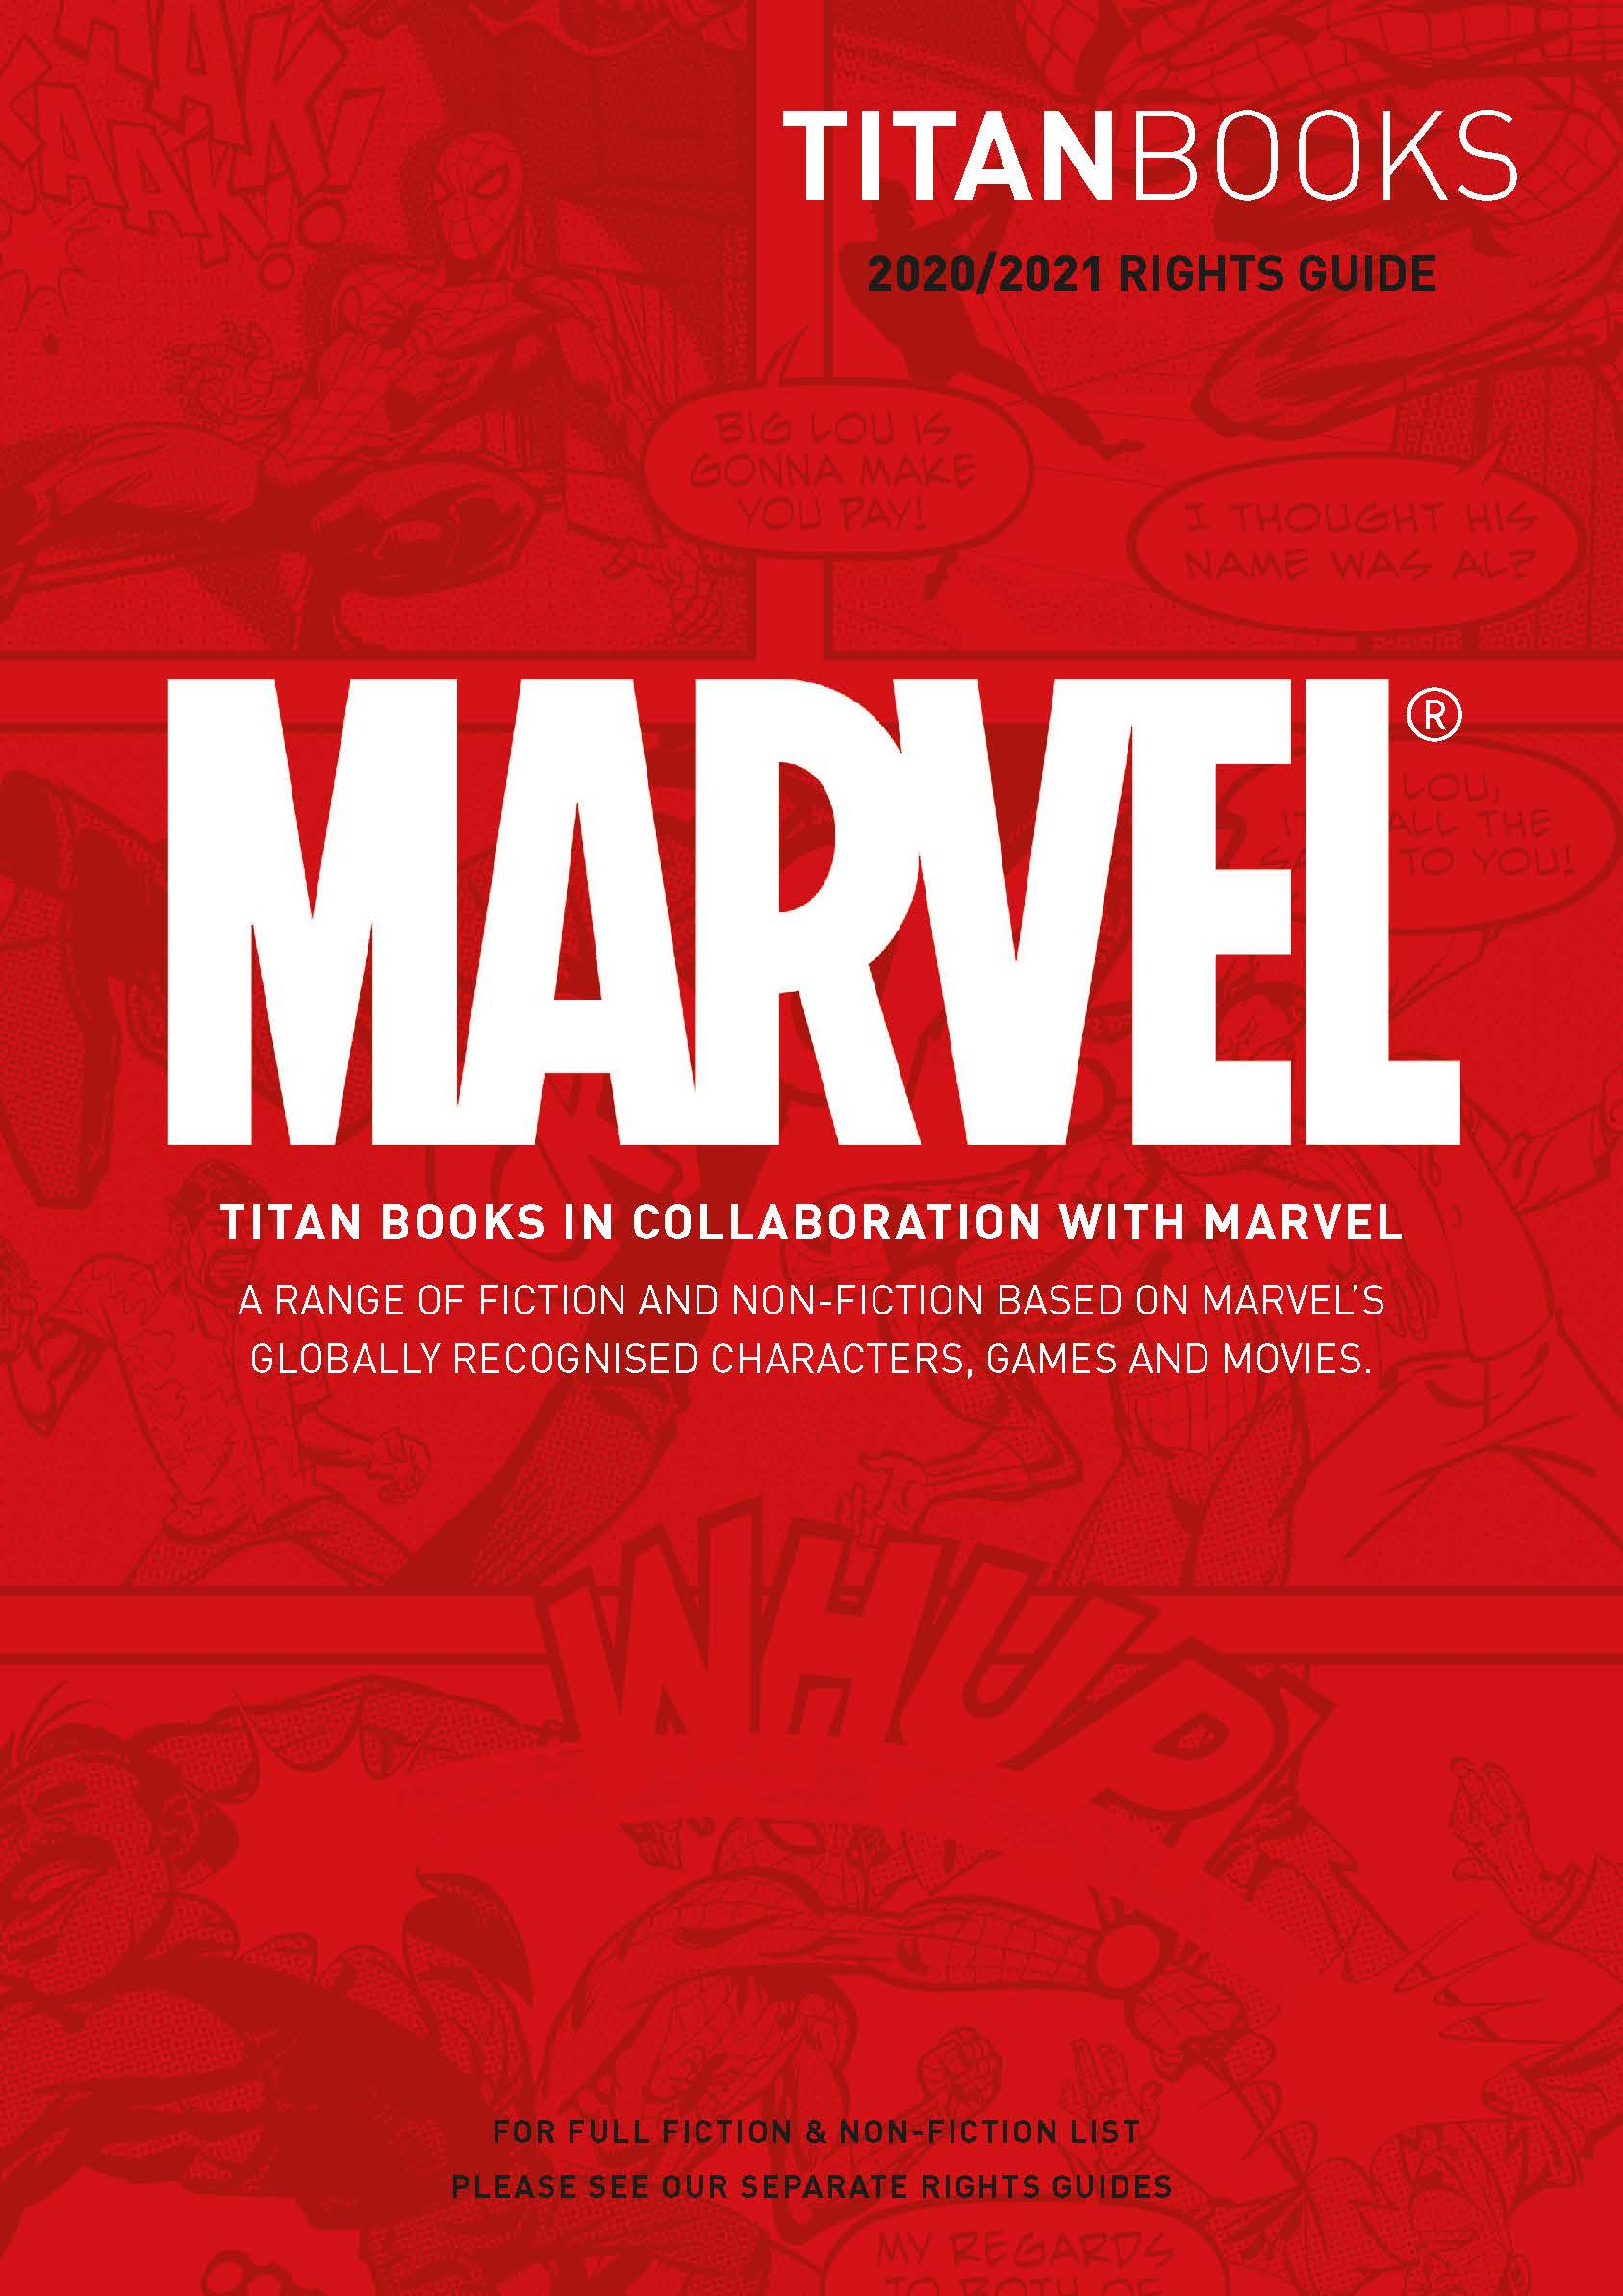 [Preview Image for 2. Marvel Fiction & Non-Fiction]